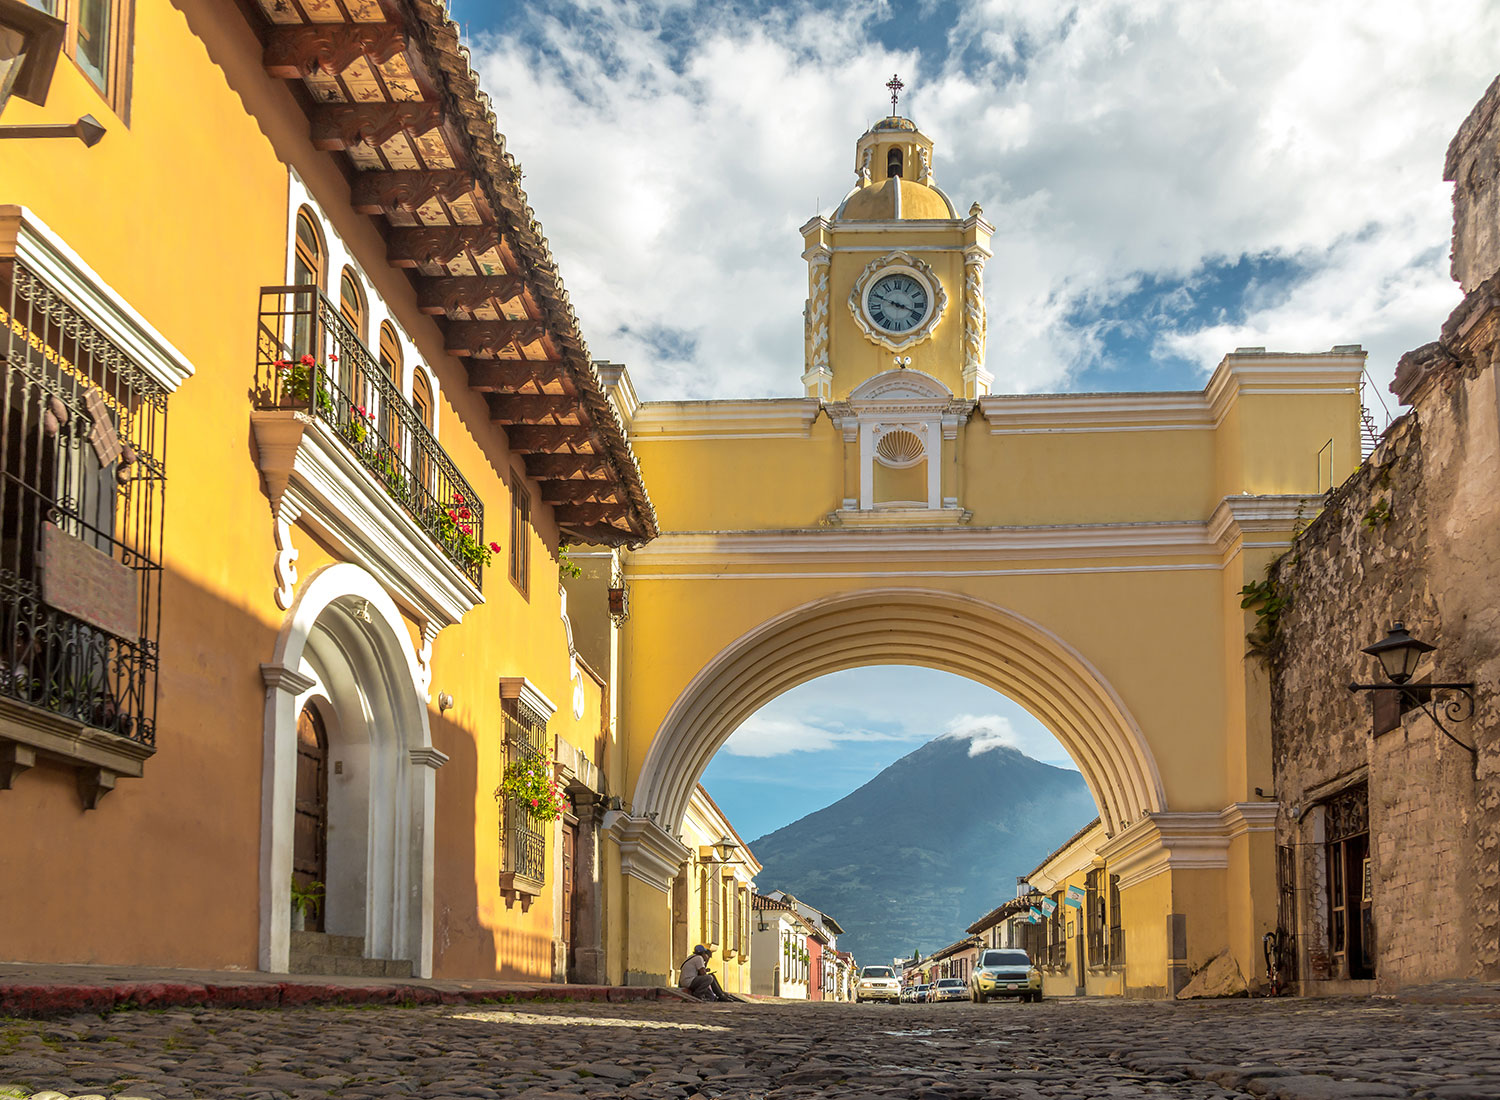 Yellow arched wall with a clock at the top of the structure in Guatemala